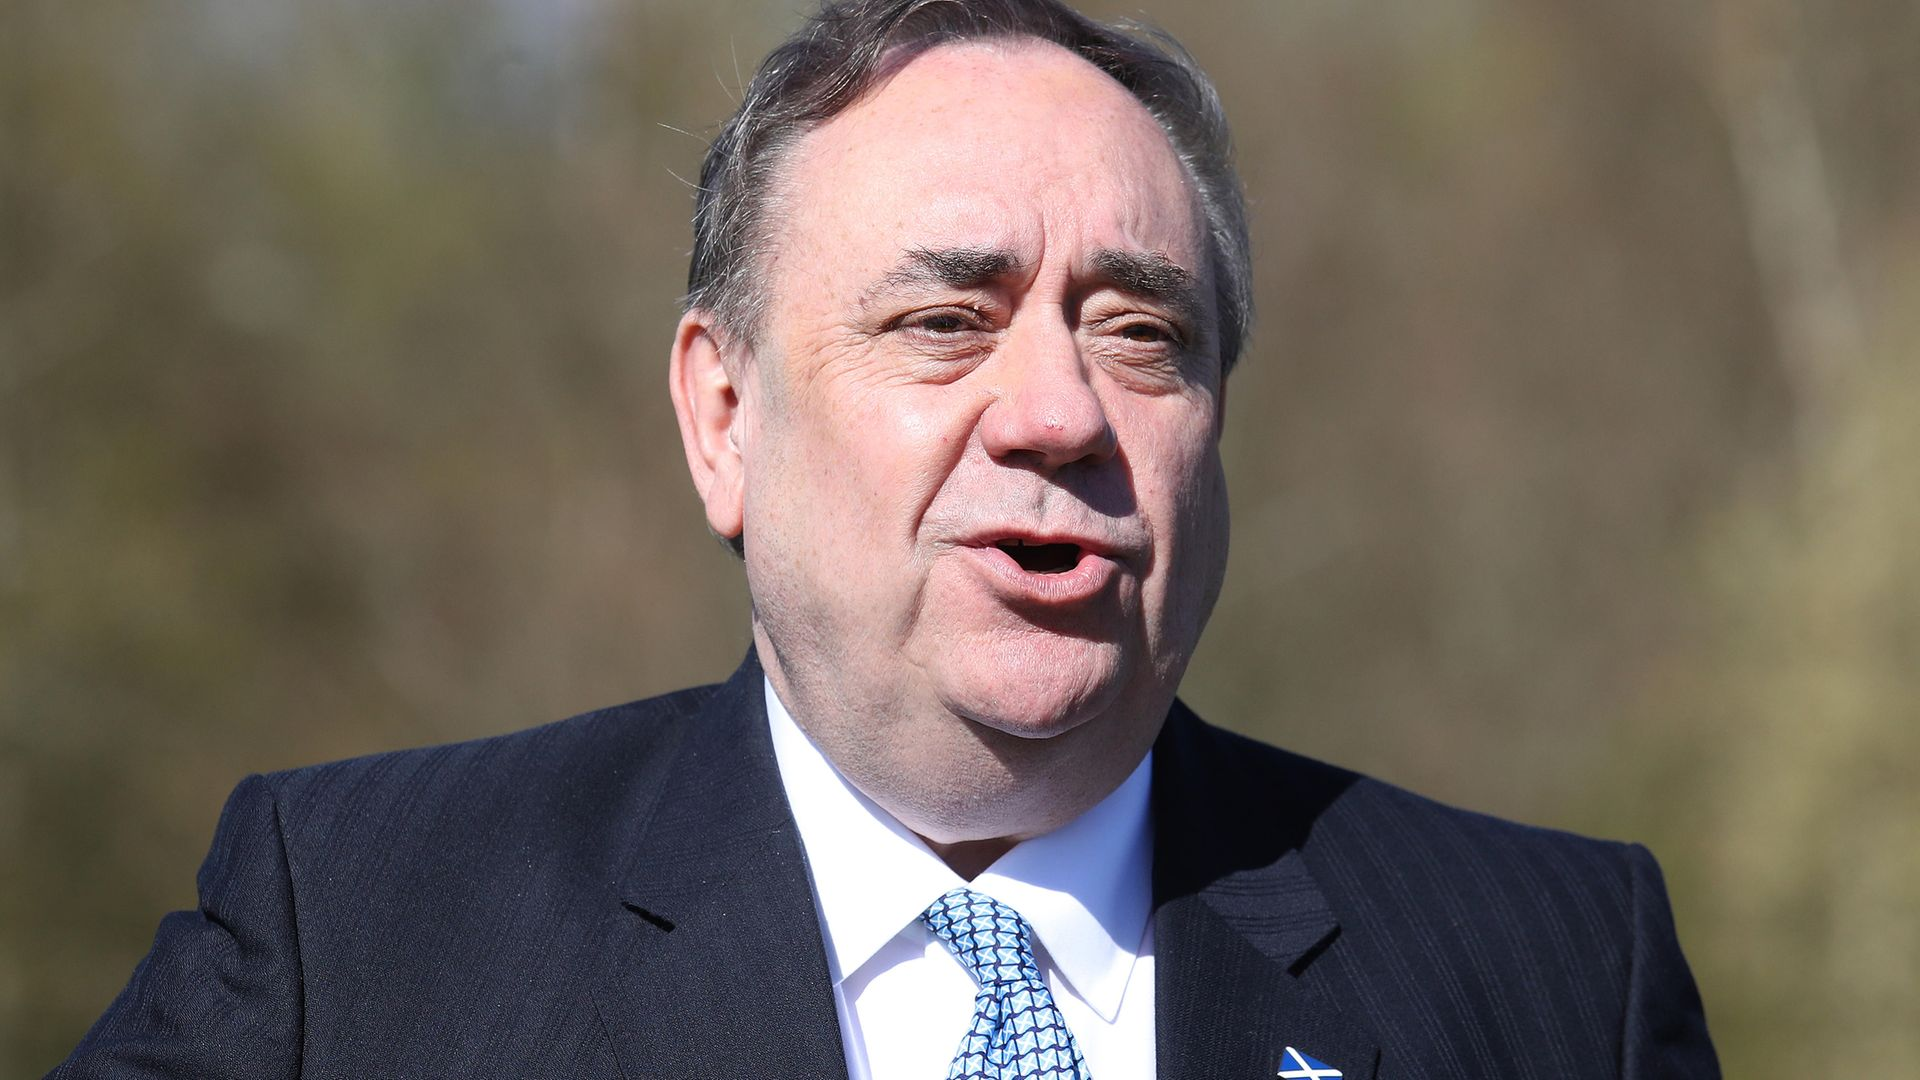 ALBA Party leader Alex Salmond at their party manifesto launch at the Falkirk Wheel in Falkirk - Credit: PA